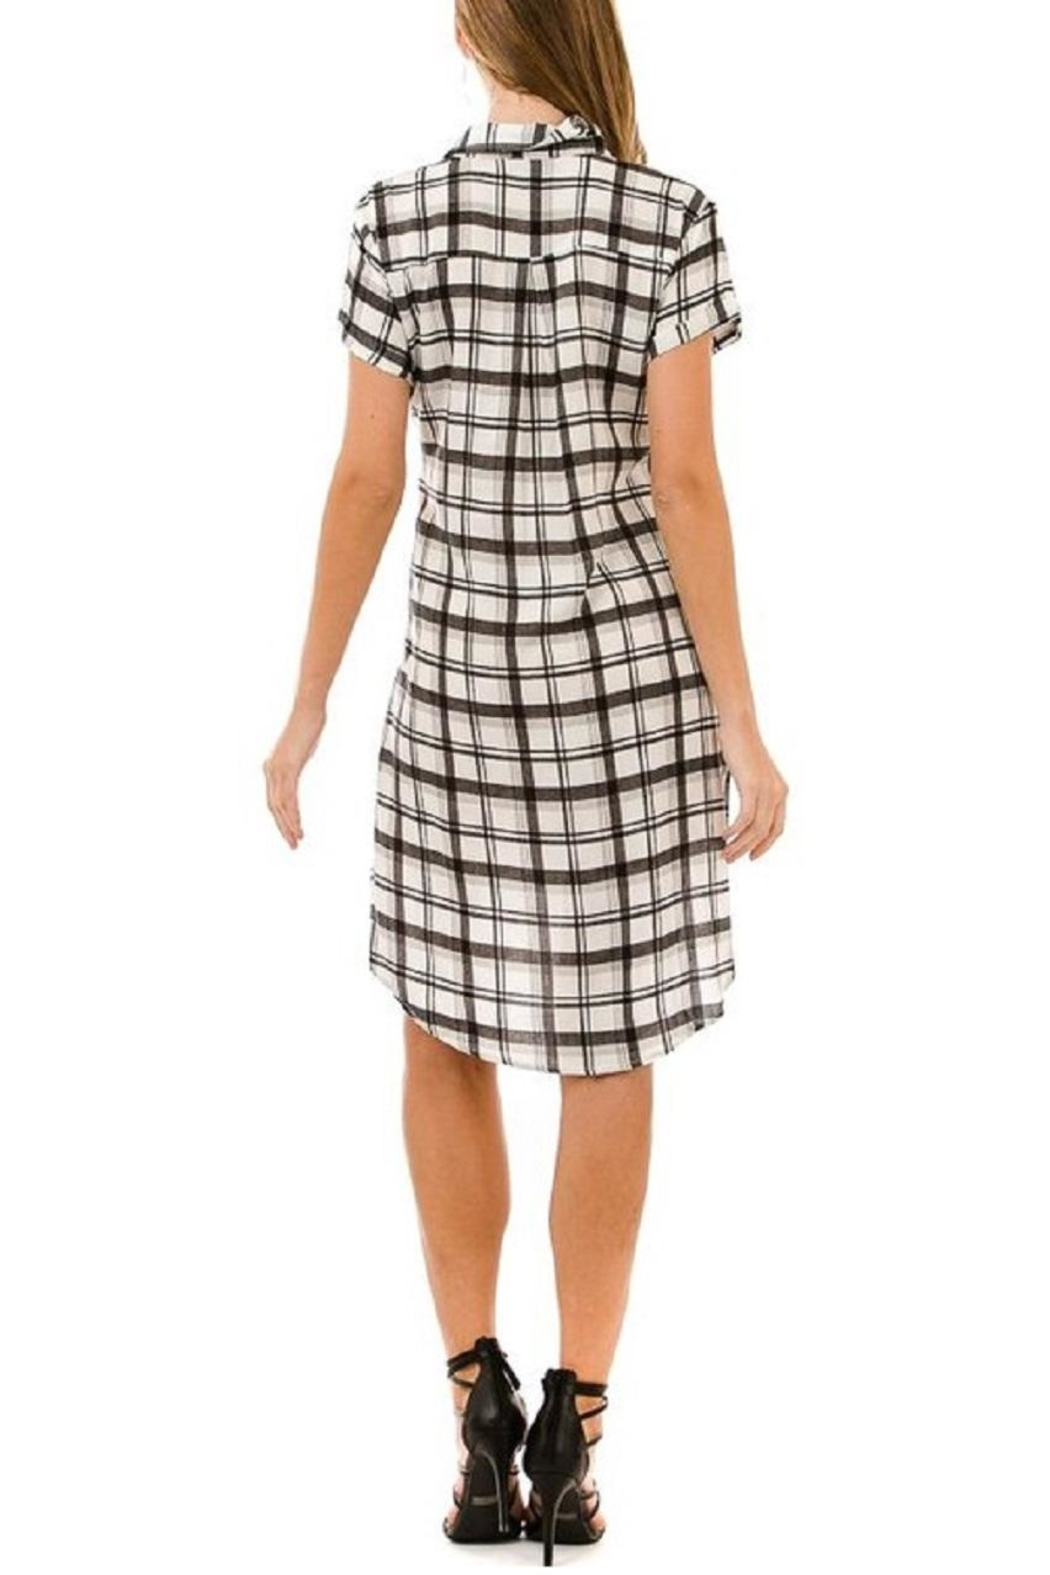 AKAIV Tie-Front Shirt Dress - Side Cropped Image